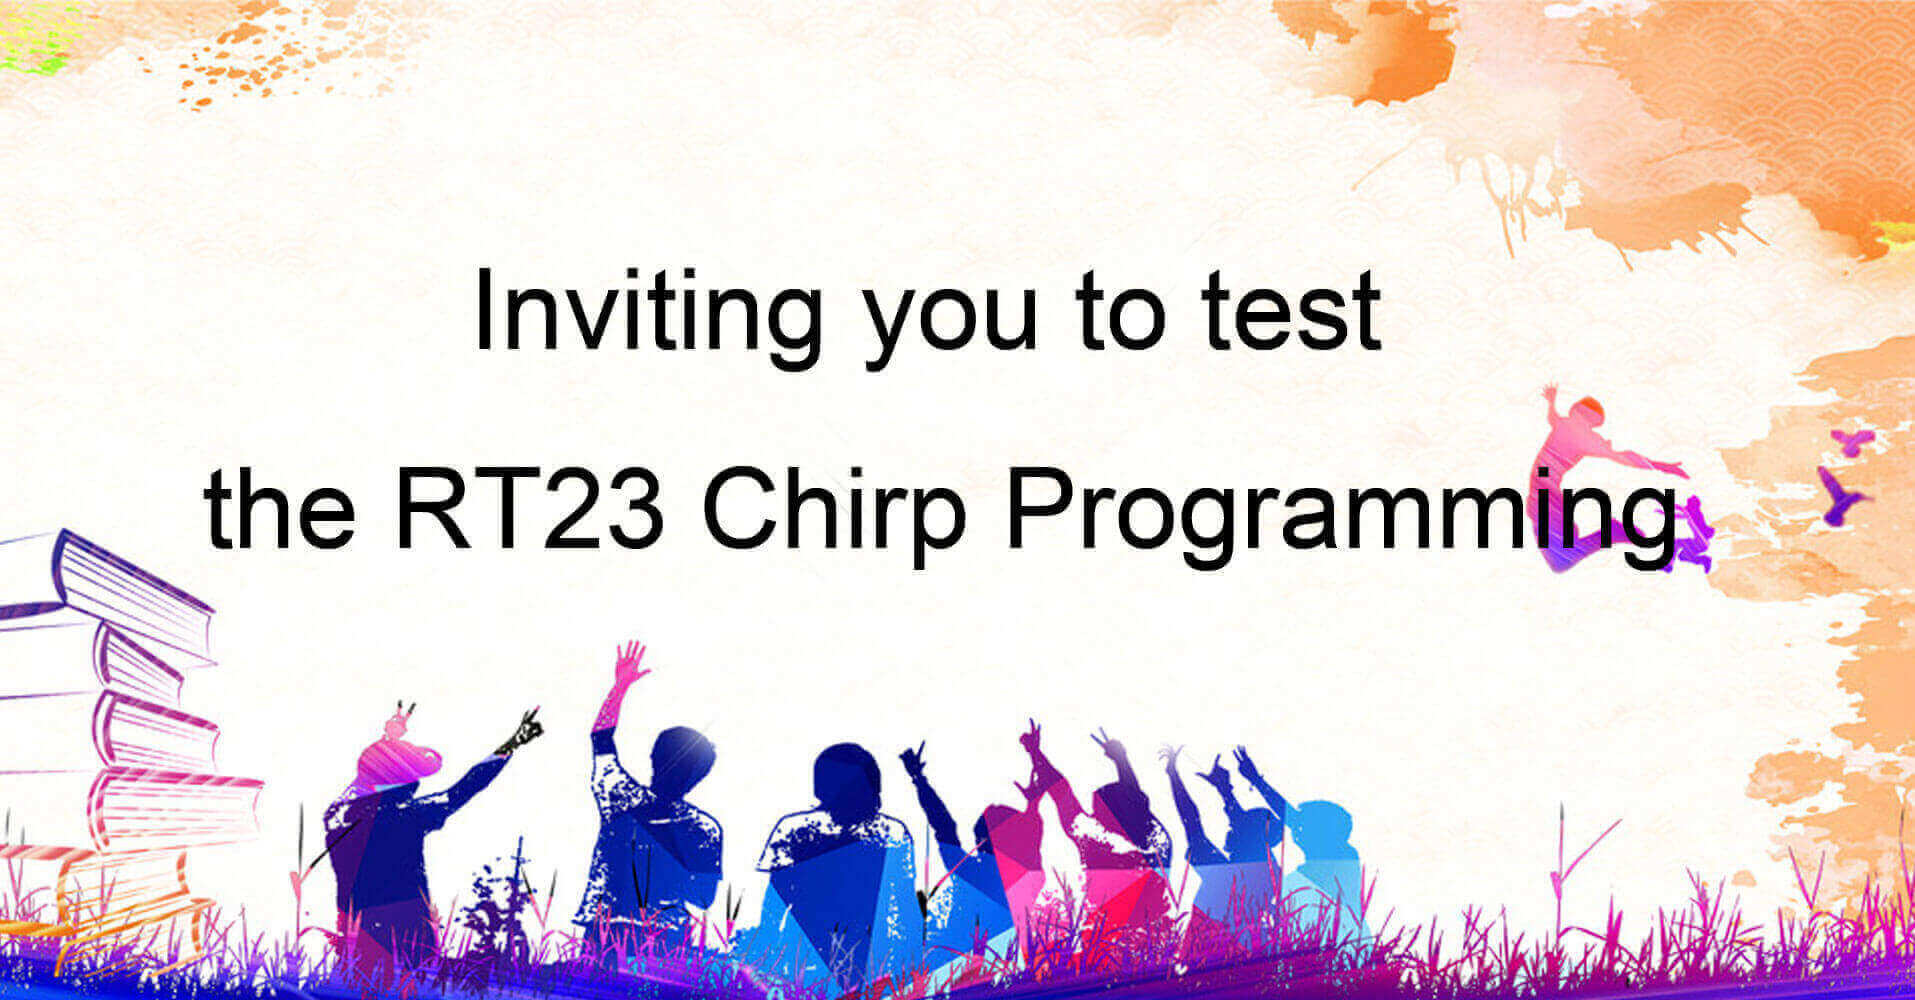 Inviting you to test the RT23 Chirp Programming before Chirp can